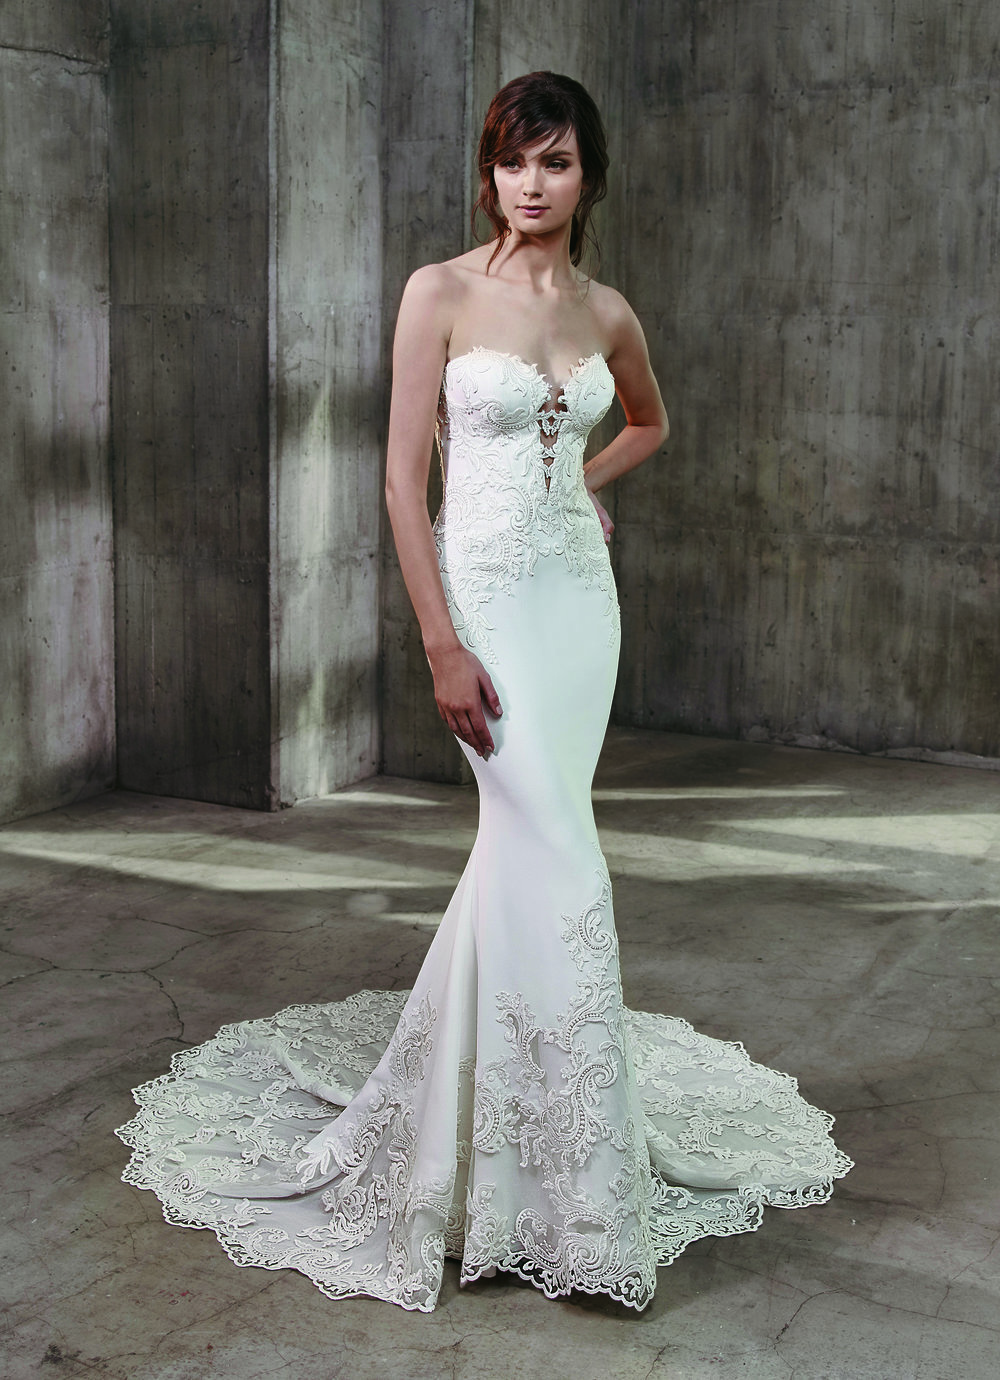 Sophisticated, sexy, and unquestionably stunning, this full-length Badgley Mischka mermaid gown is our dress of the month! Showcasing the softest, sleekest stretch crepe fabric adorned with gorgeously ornate lace embroidery give this dress serious wow factor.